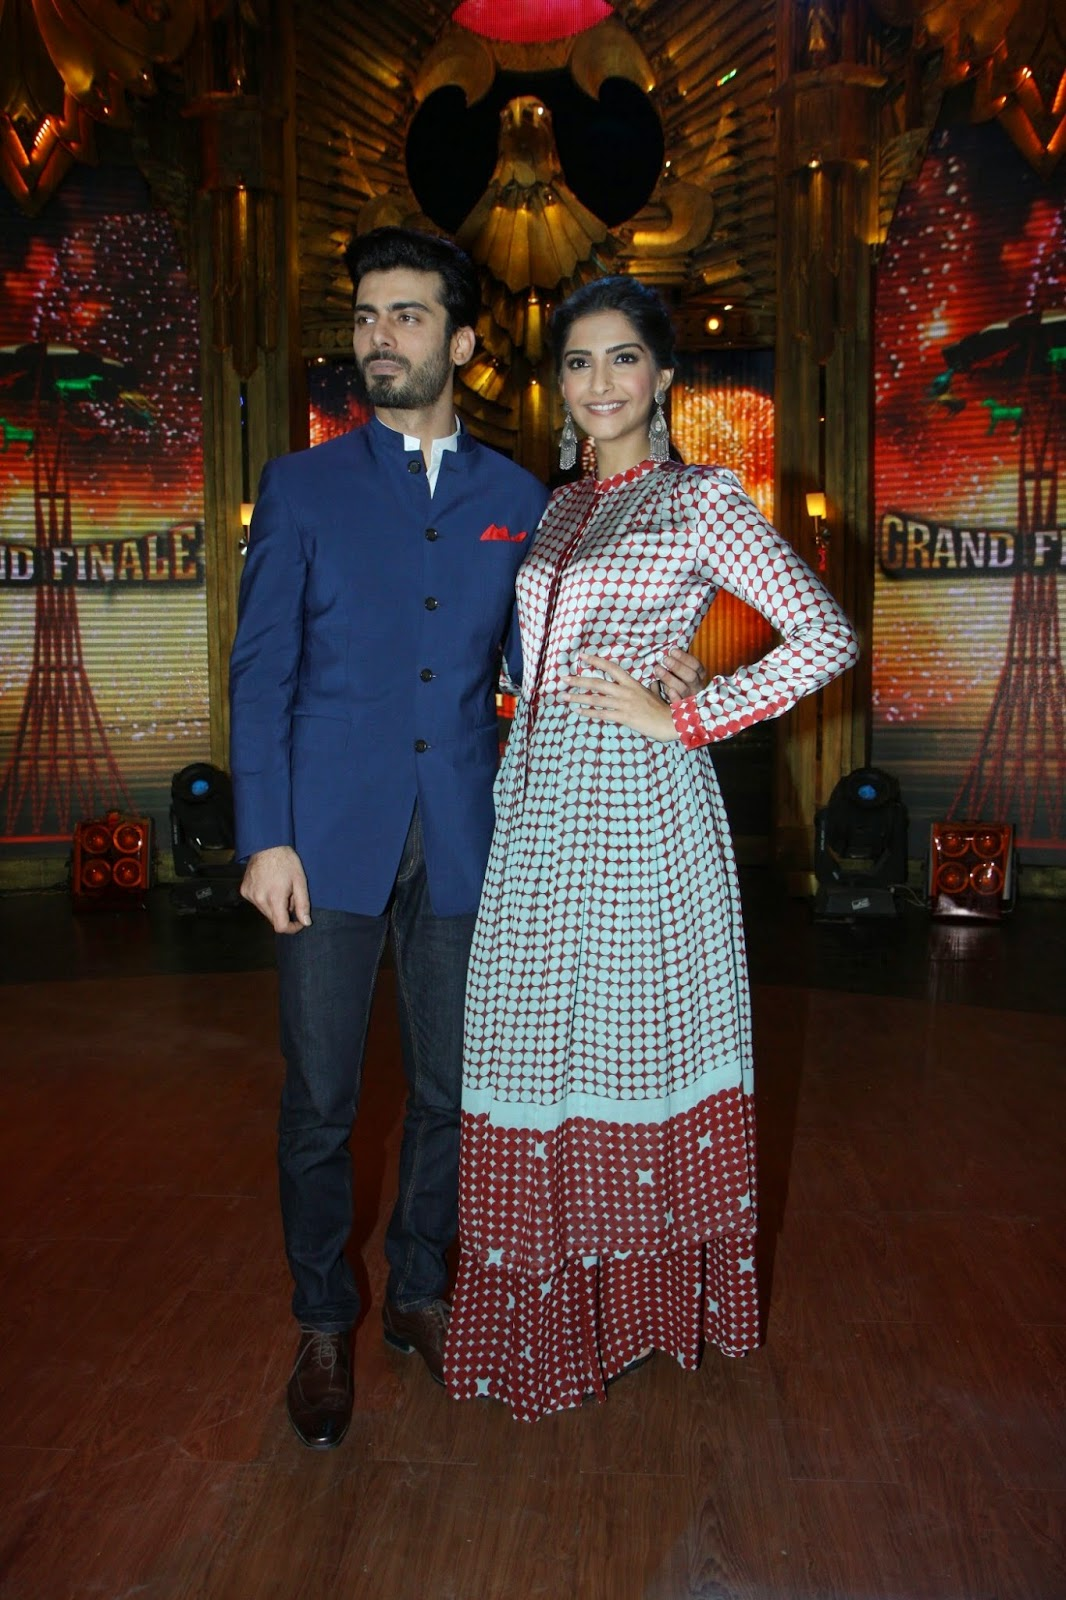 http://3.bp.blogspot.com/-9r0K956lRws/U9Ze6oGEeJI/AAAAAAABv_Y/7-J4Ymsn9c8/s1600/+Sonam+&+Fawad+Khan+at+Promotion+of+%27Khoobsurat%27+on+Entertainment+Ke+Liye+Kuch+Bhi+Karega+(2).JPG